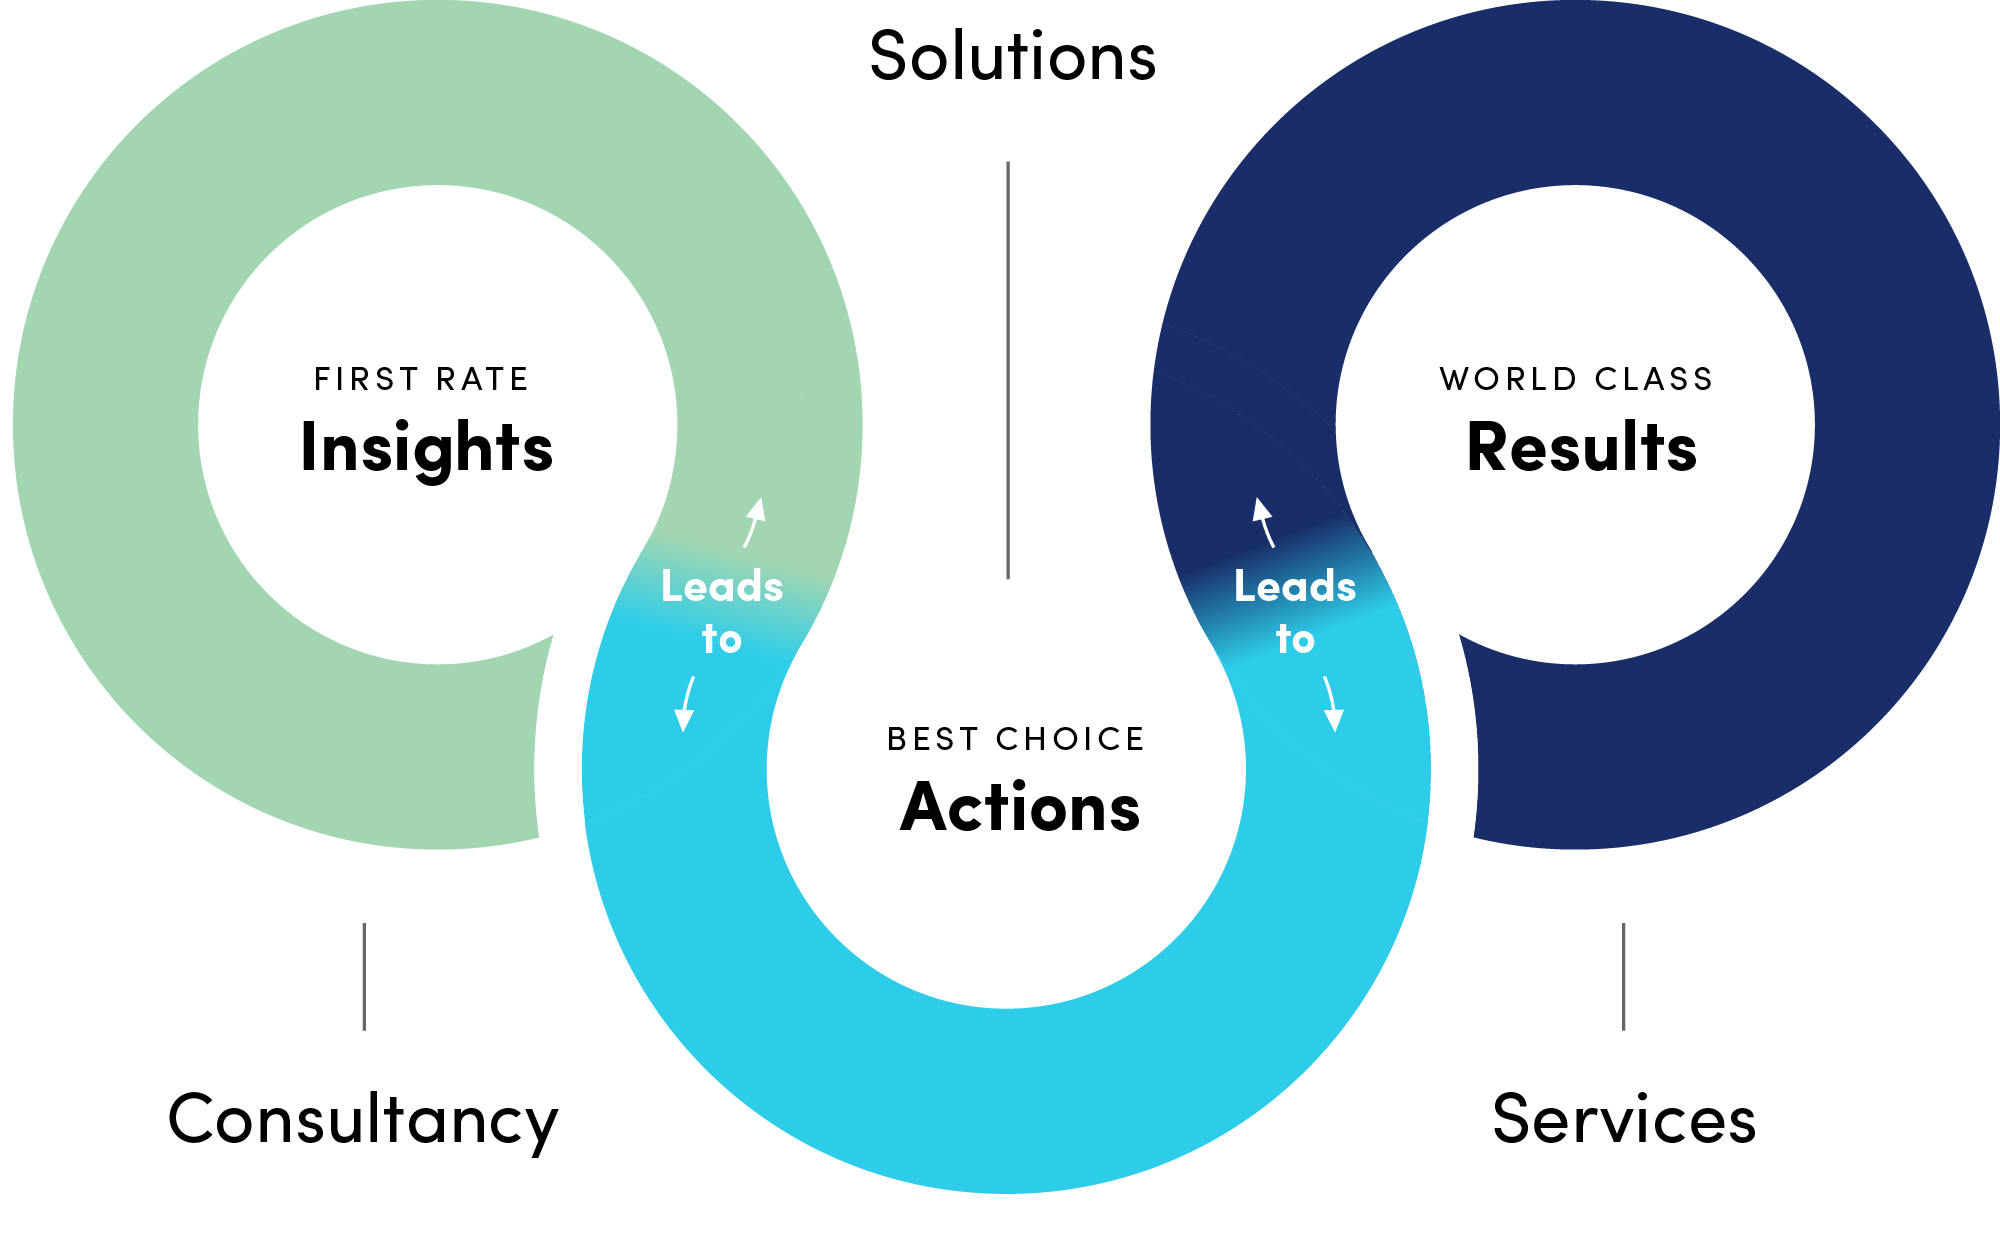 Edified Insight Diagram